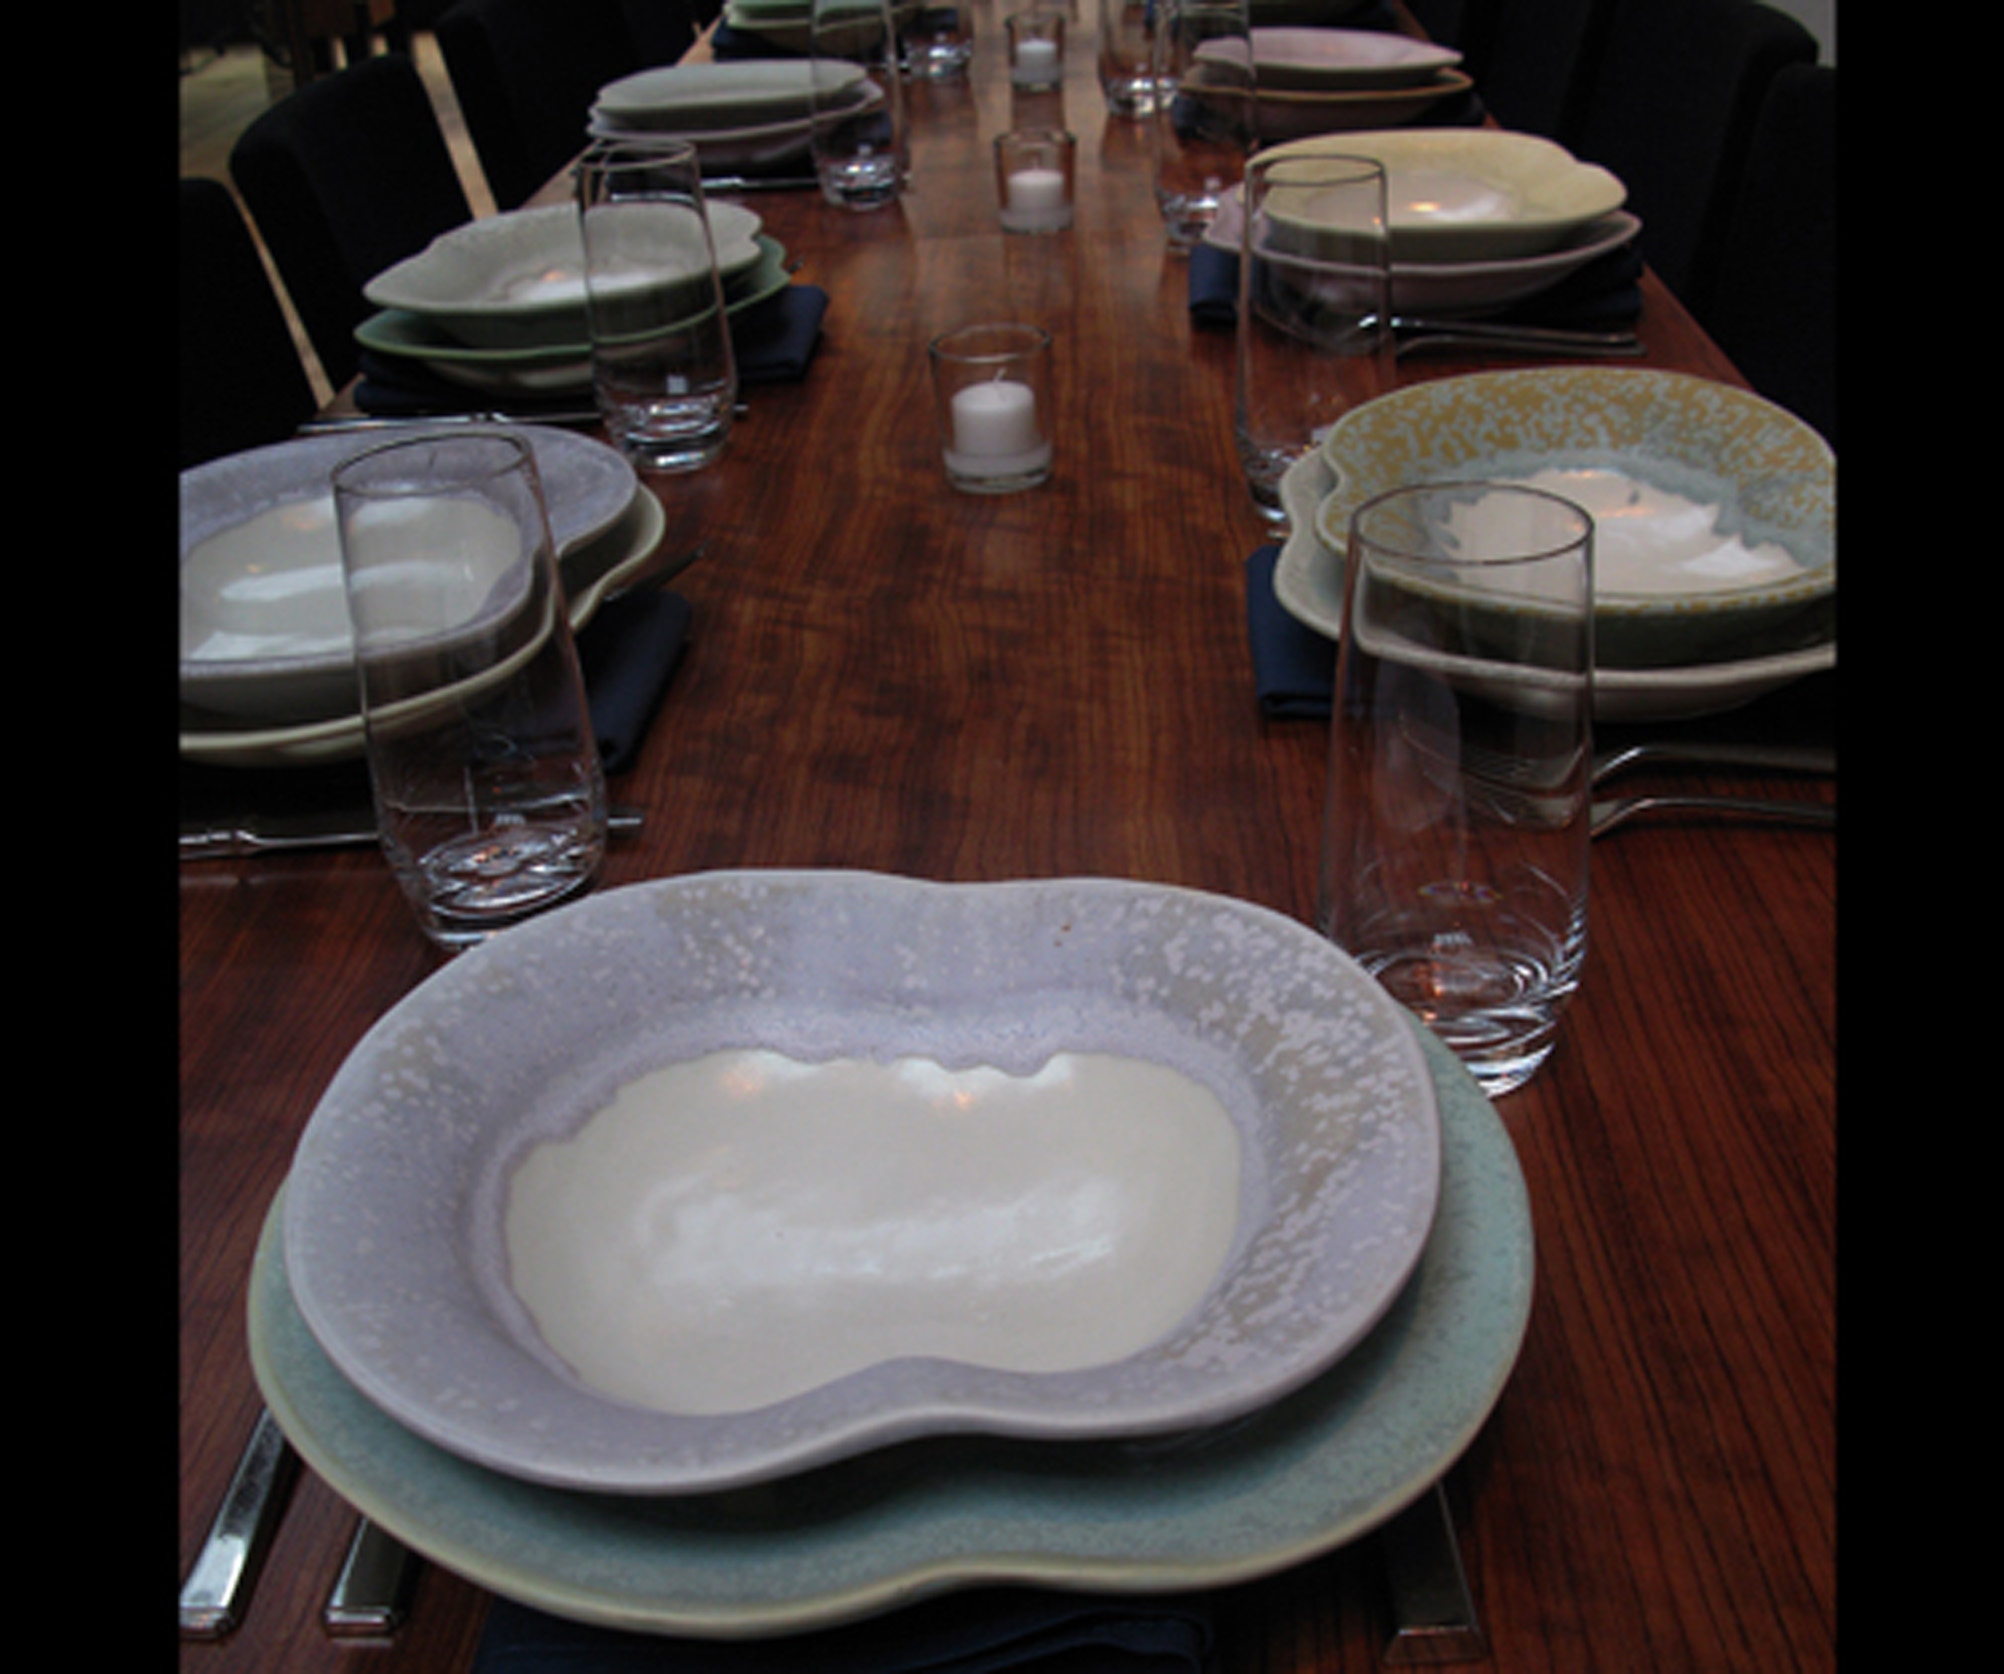 tablescape3.jpg